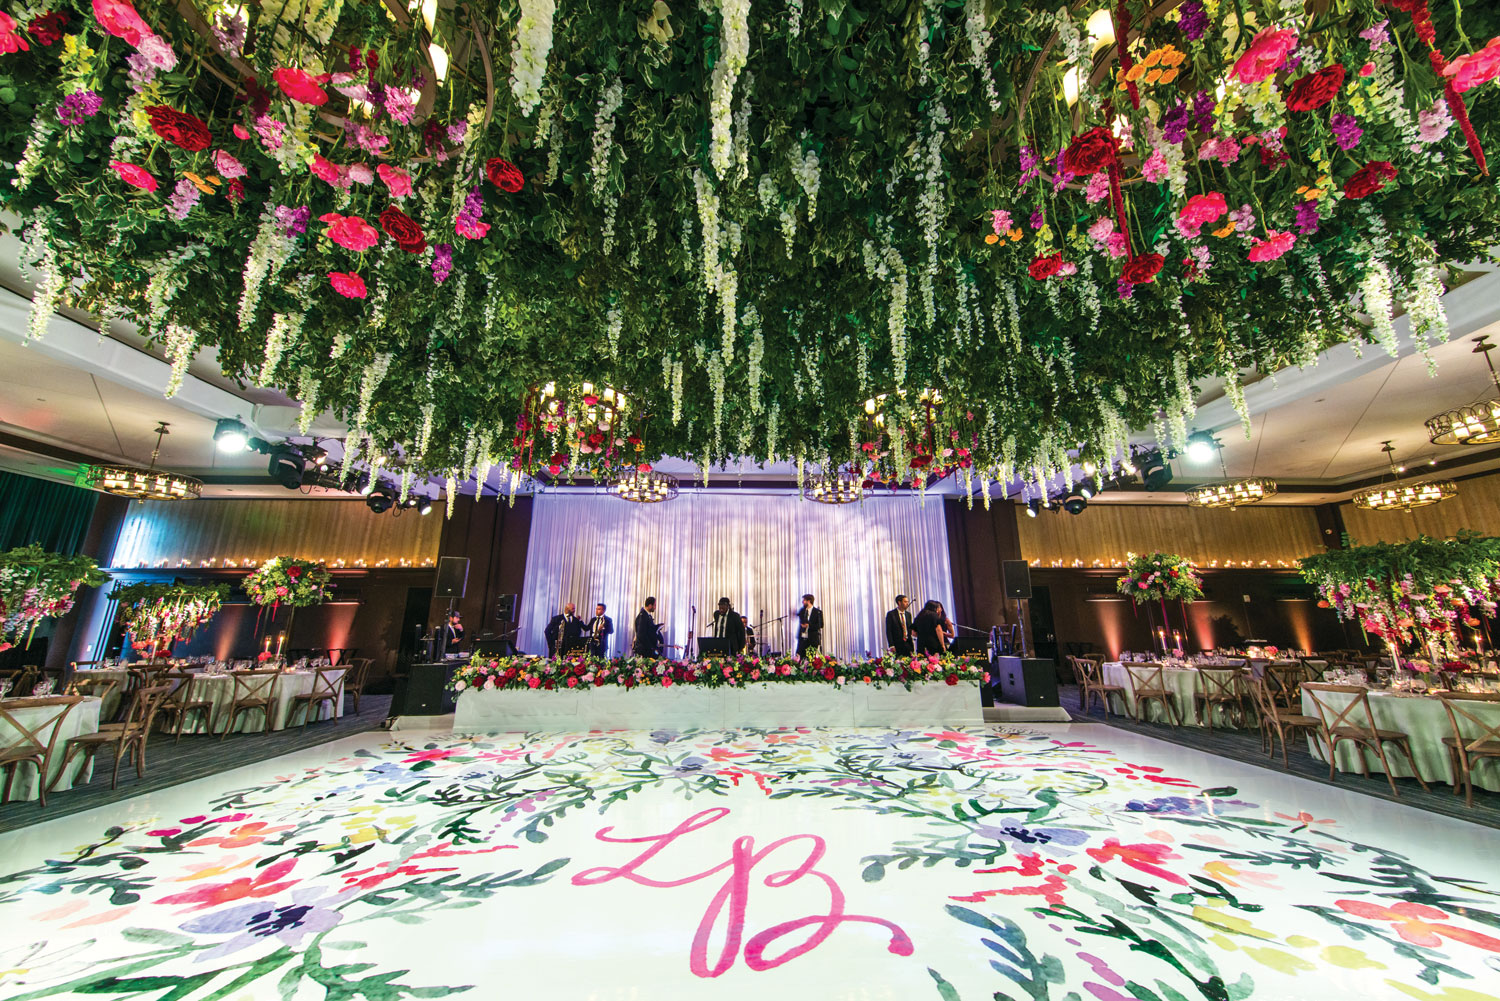 Inside Weddings magazine Spring 2019 issue colorful wedding reception dance floor ceiling greenery